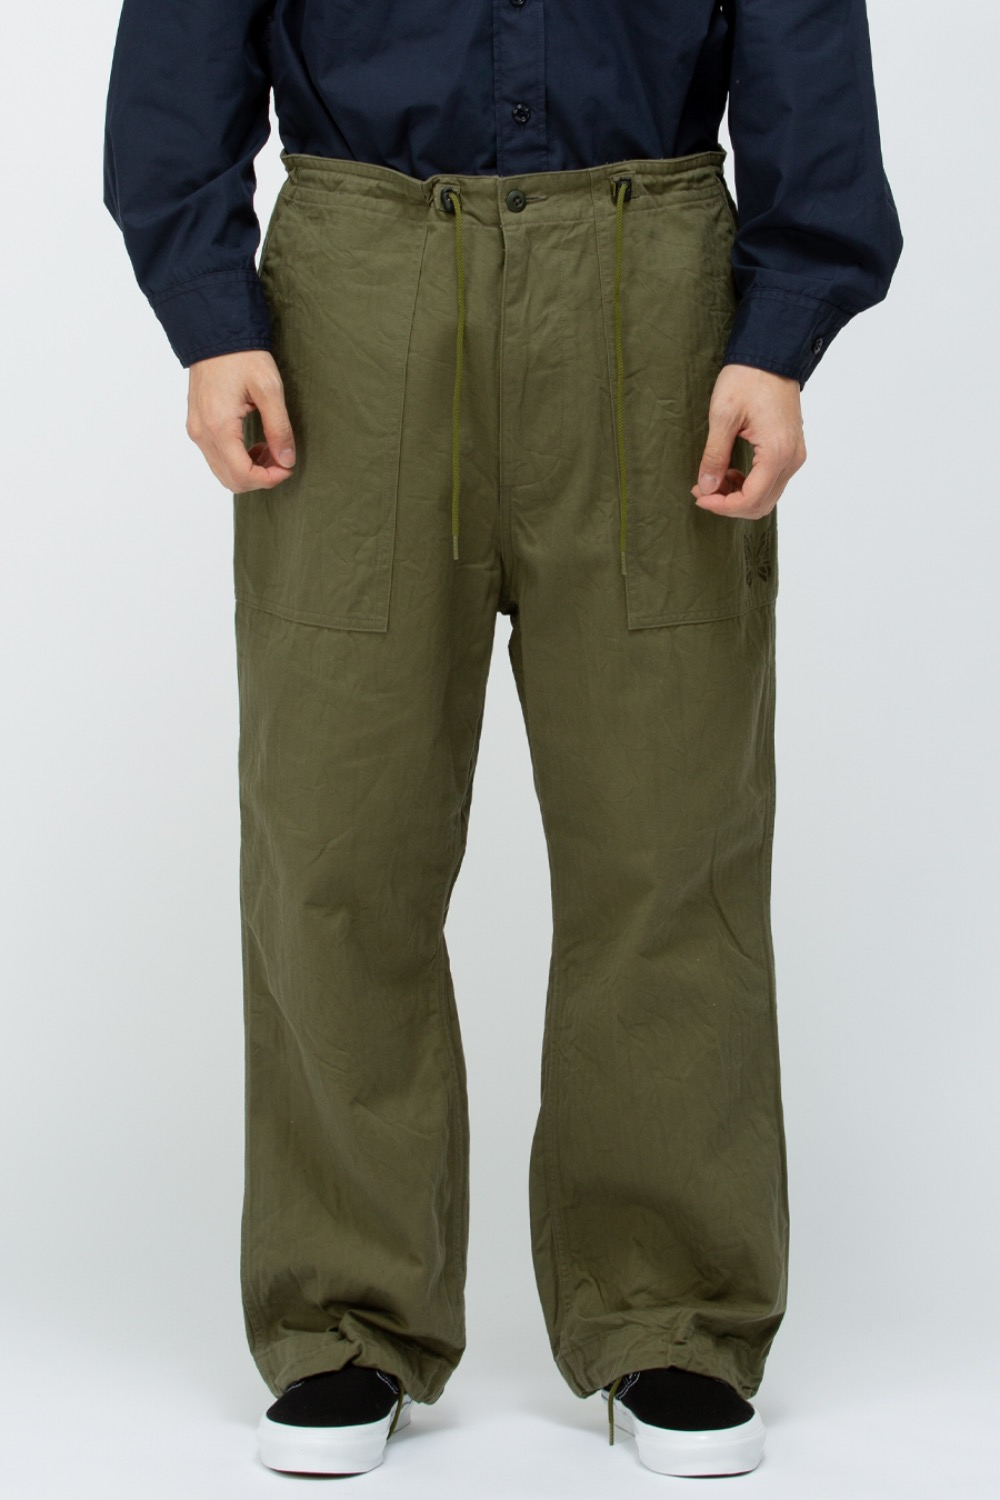 STRING FATIGUE PANT - COTTON HERRINGBONE OLIVE